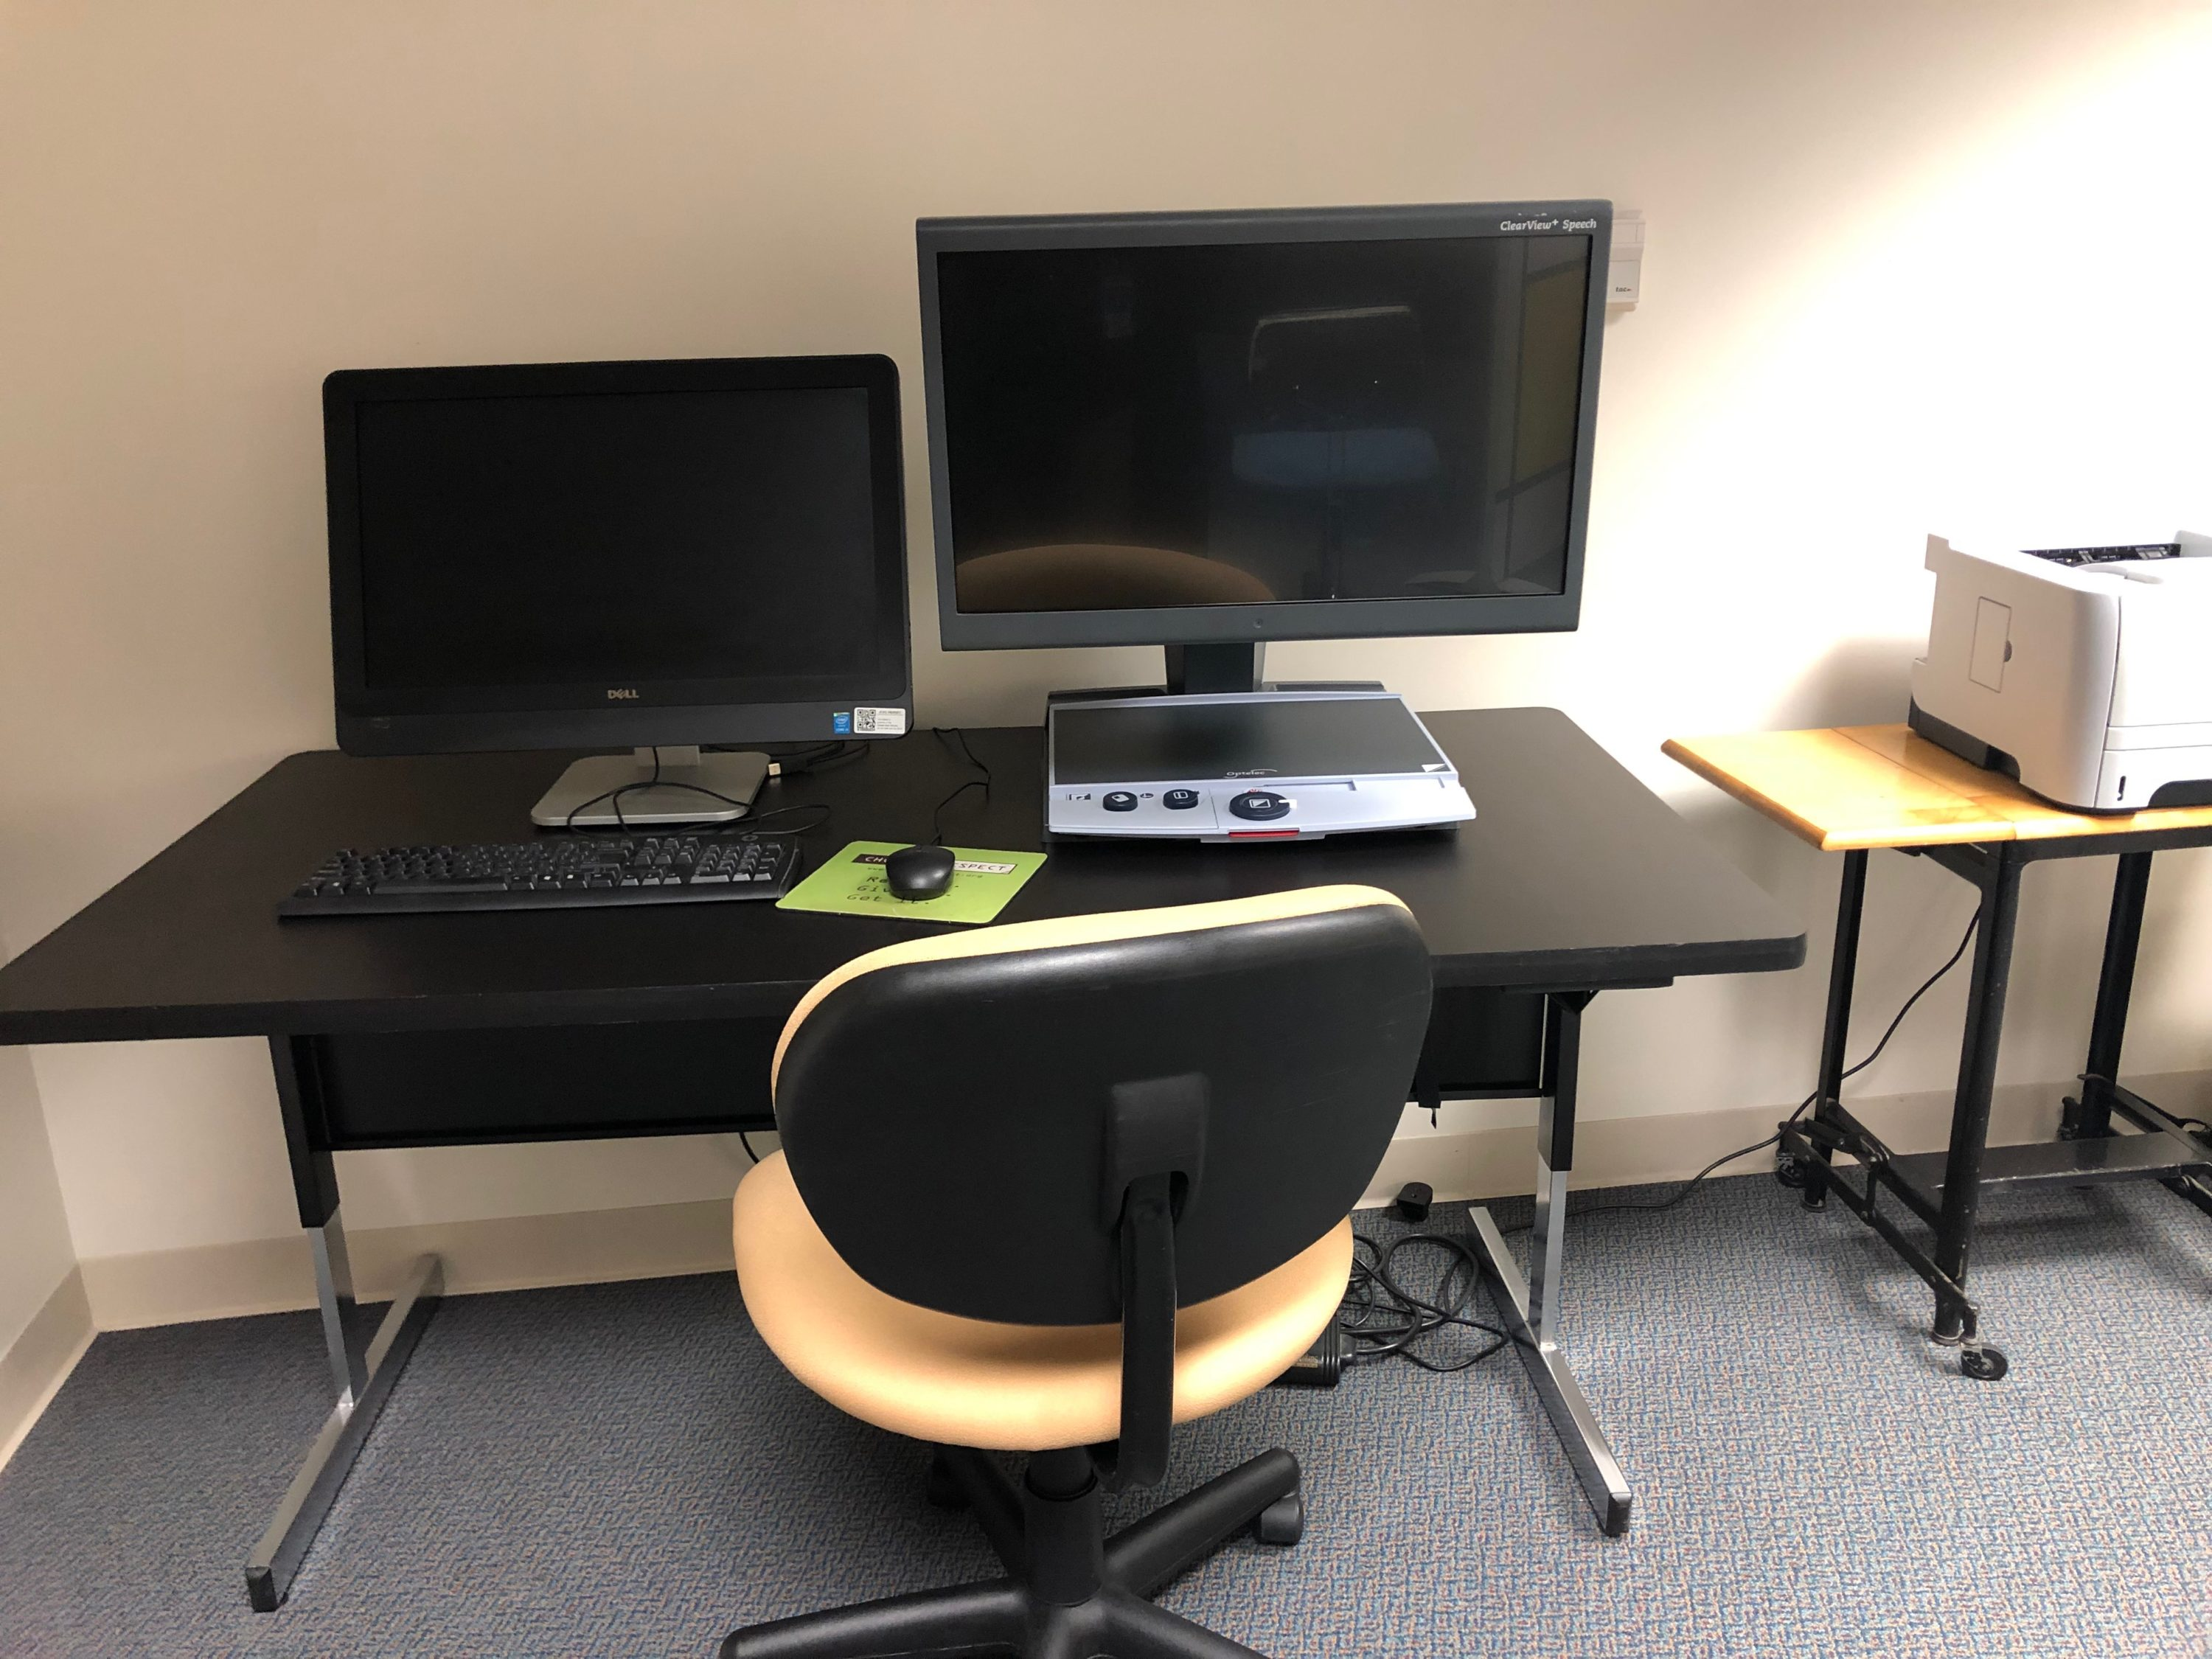 A table with a computer and a CCTV. To the right is a table with a printer.